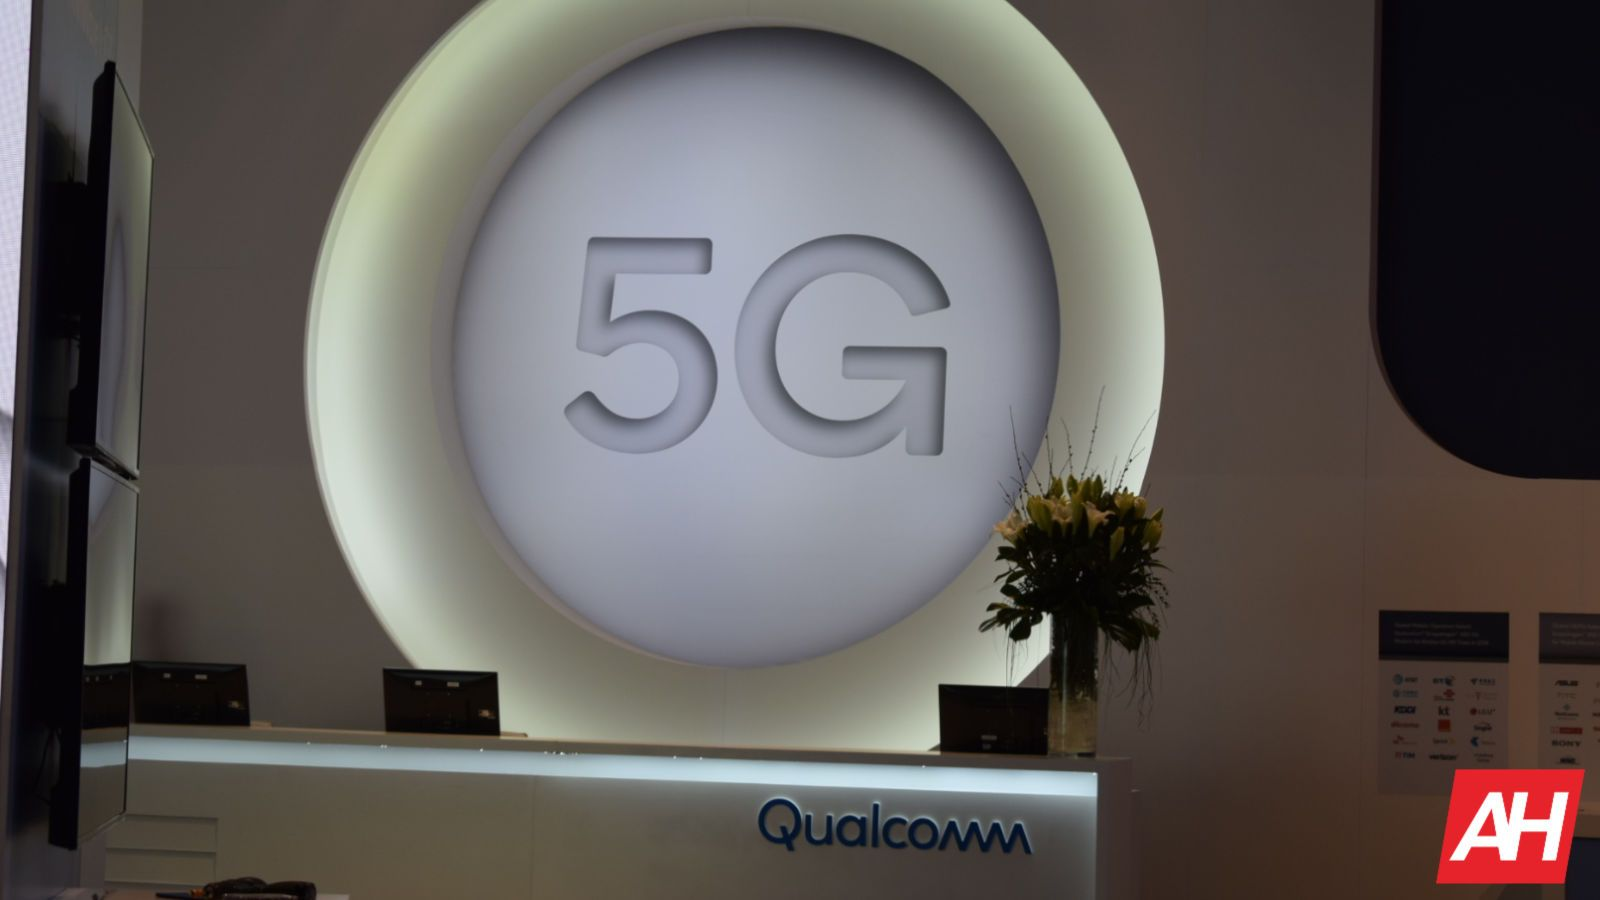 Qualcomm Bosch Working Together On 5g Nr For The Industrial Iot